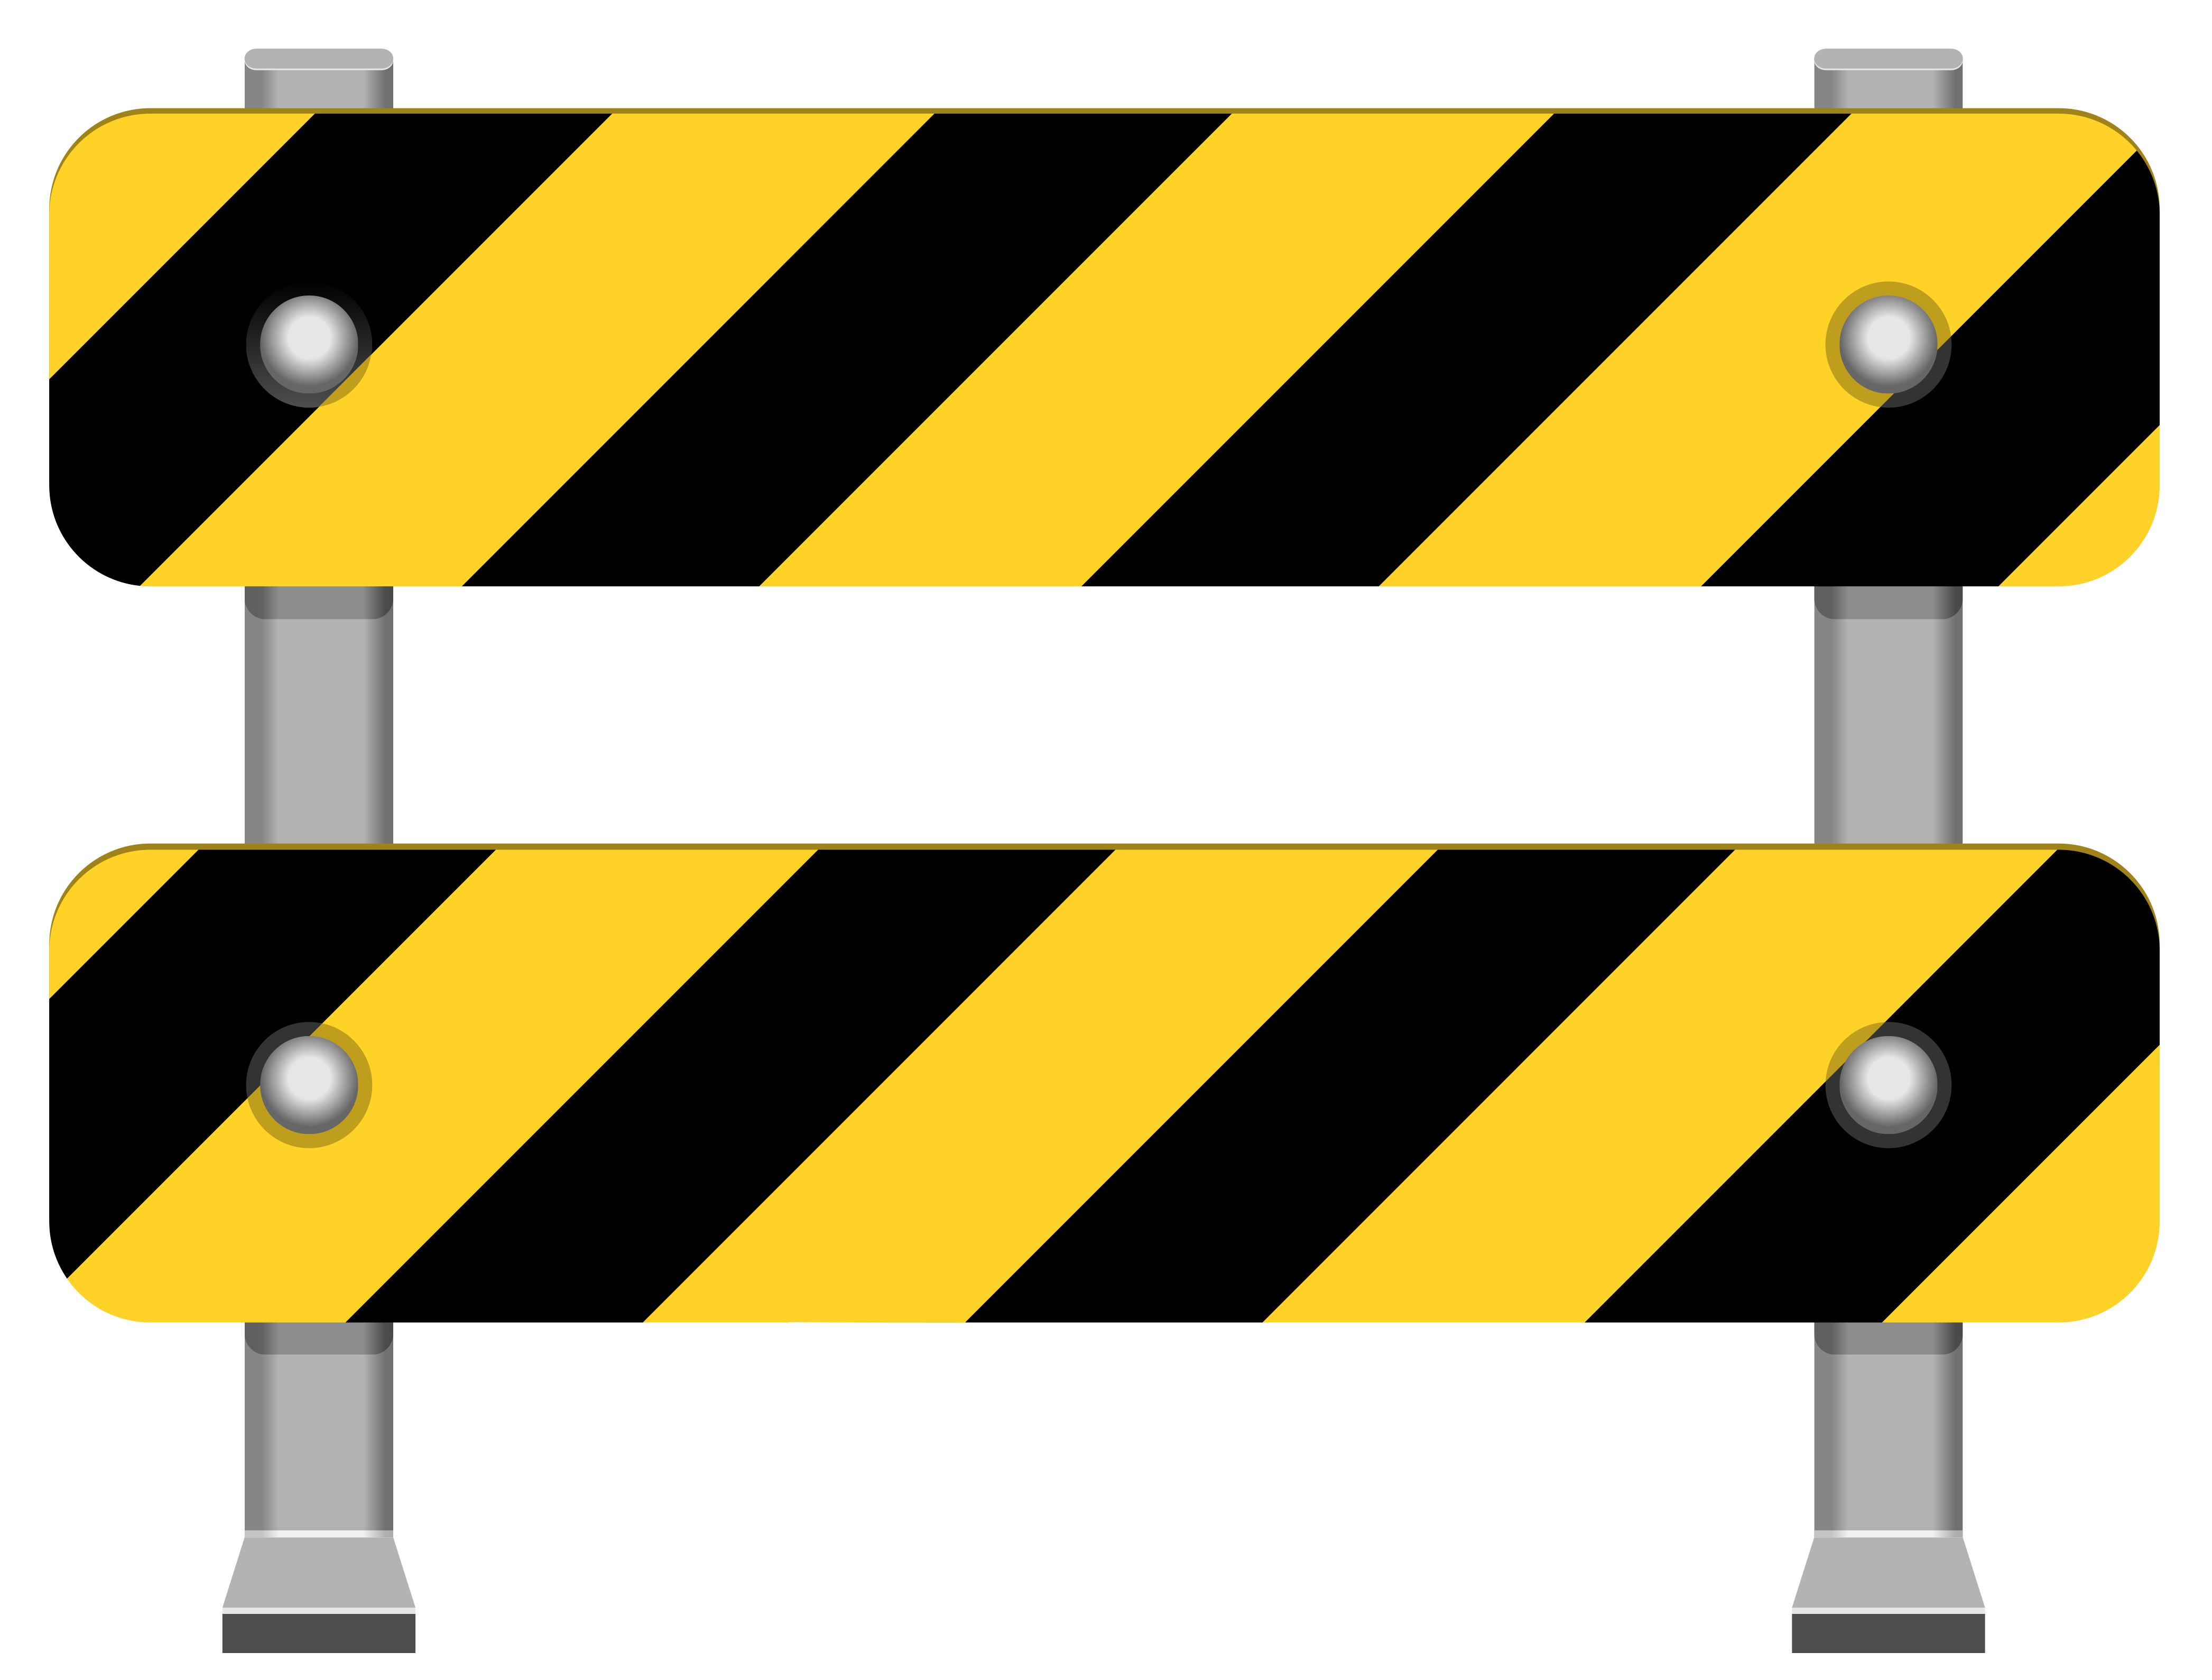 4185x3178 Yellow Road Barricade Png Clip Art